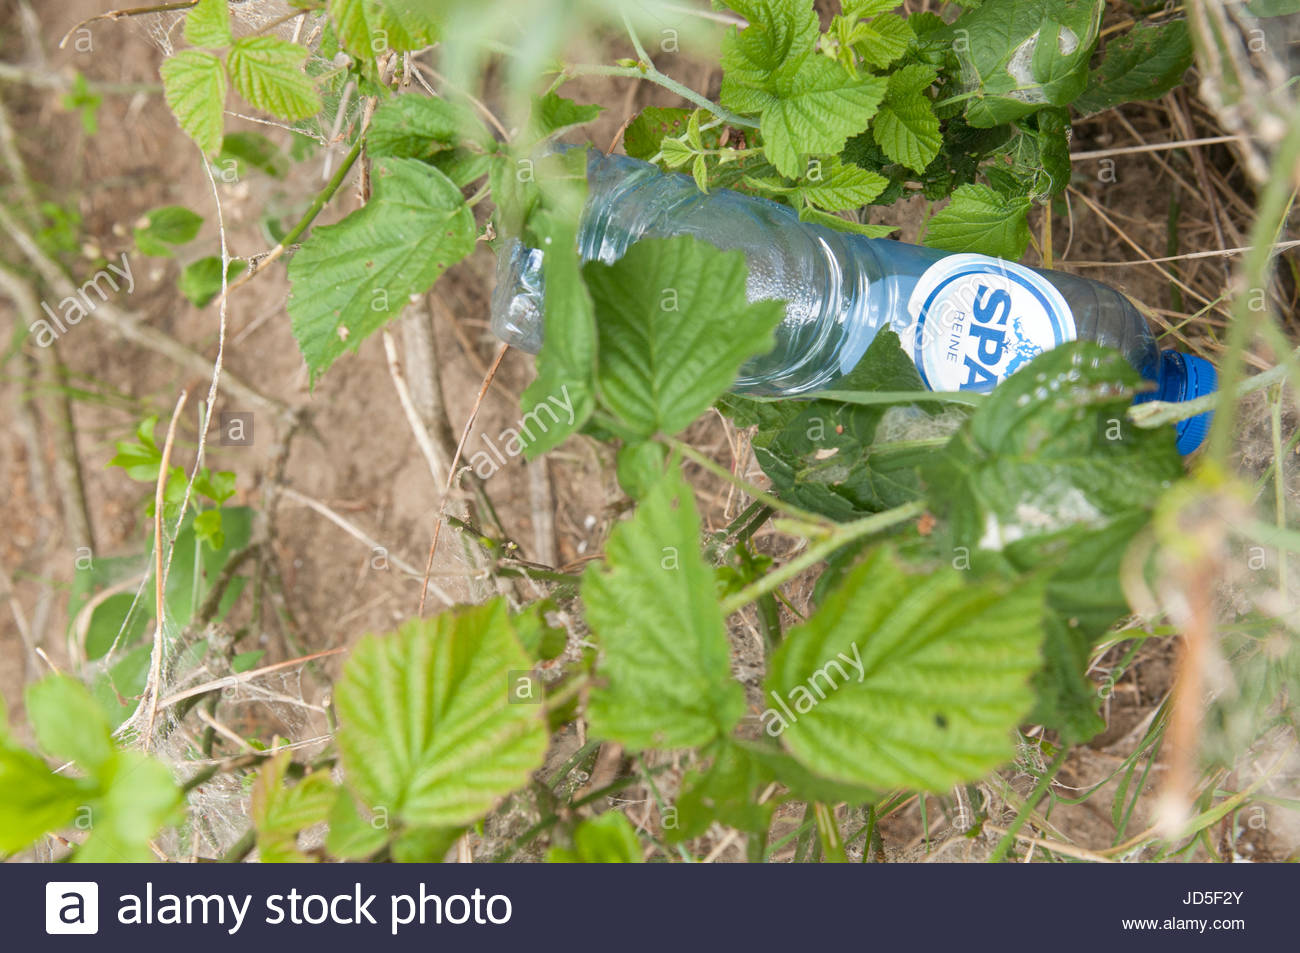 Ijmuiden The Netherlands Plastic bottle of Spa Reine water thrown away in the dunes. Spa reine (clean) is produced - Stock Image